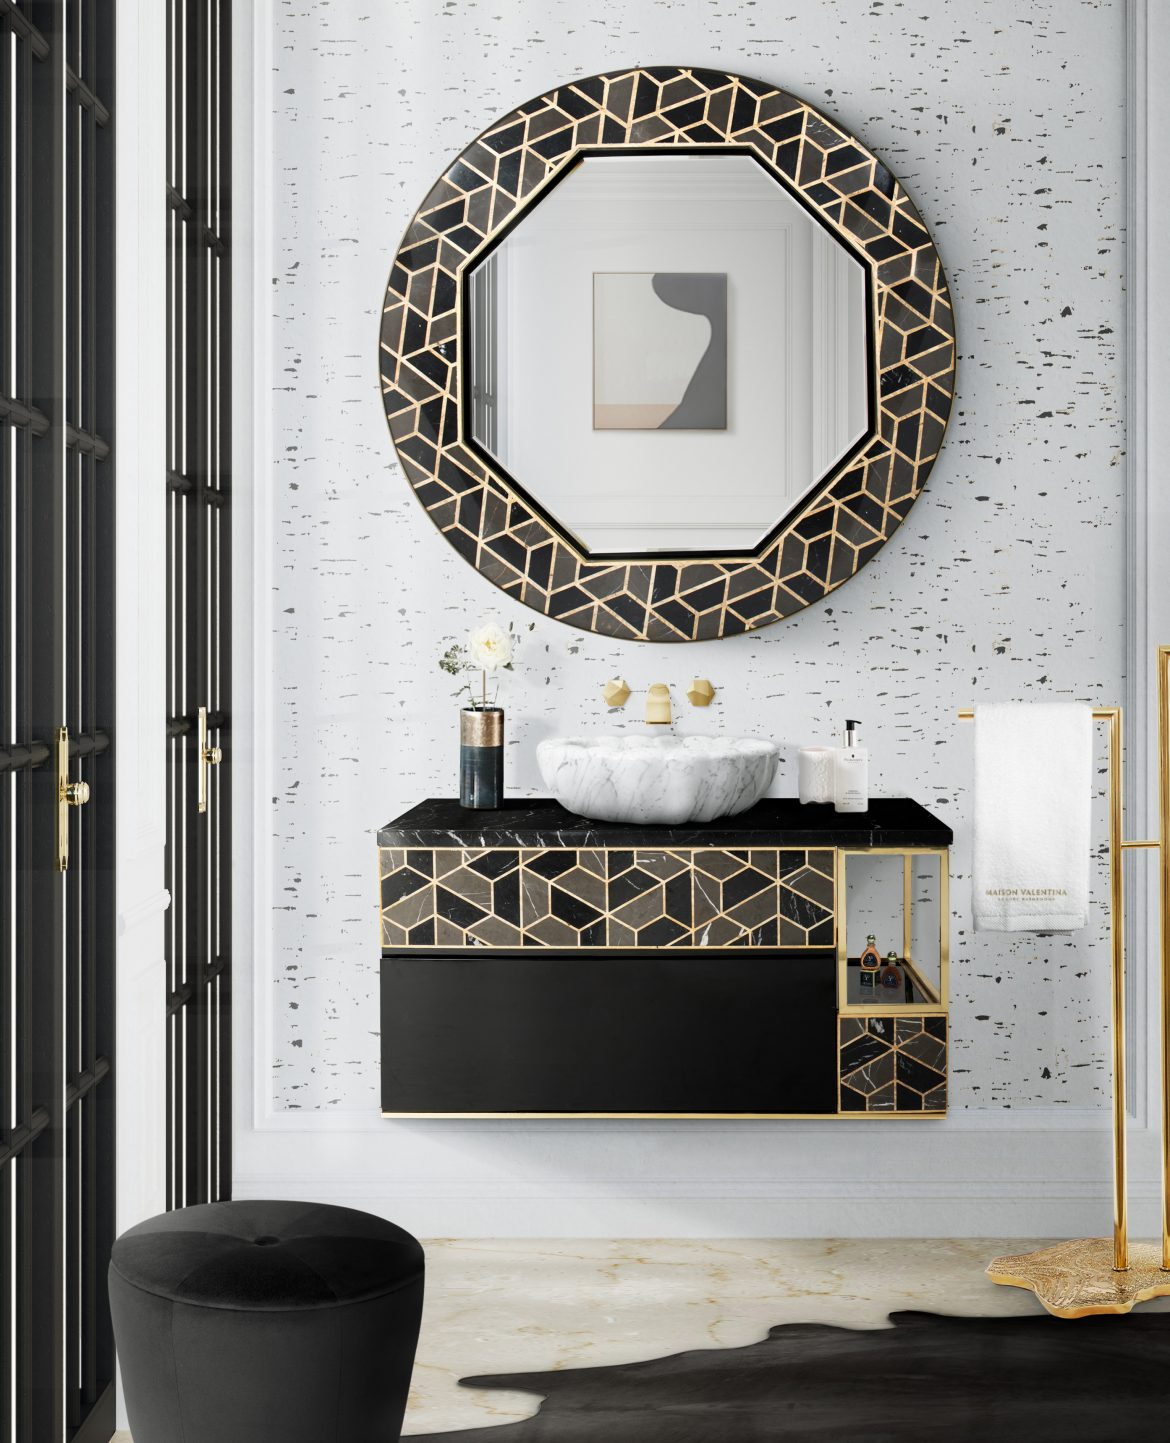 Terrazzo: The Design Trend Your Bathroom Needs terrazzo Terrazzo: The Design Trend Your Bathroom Needs terrazzo the design trend your bathroom needs 4